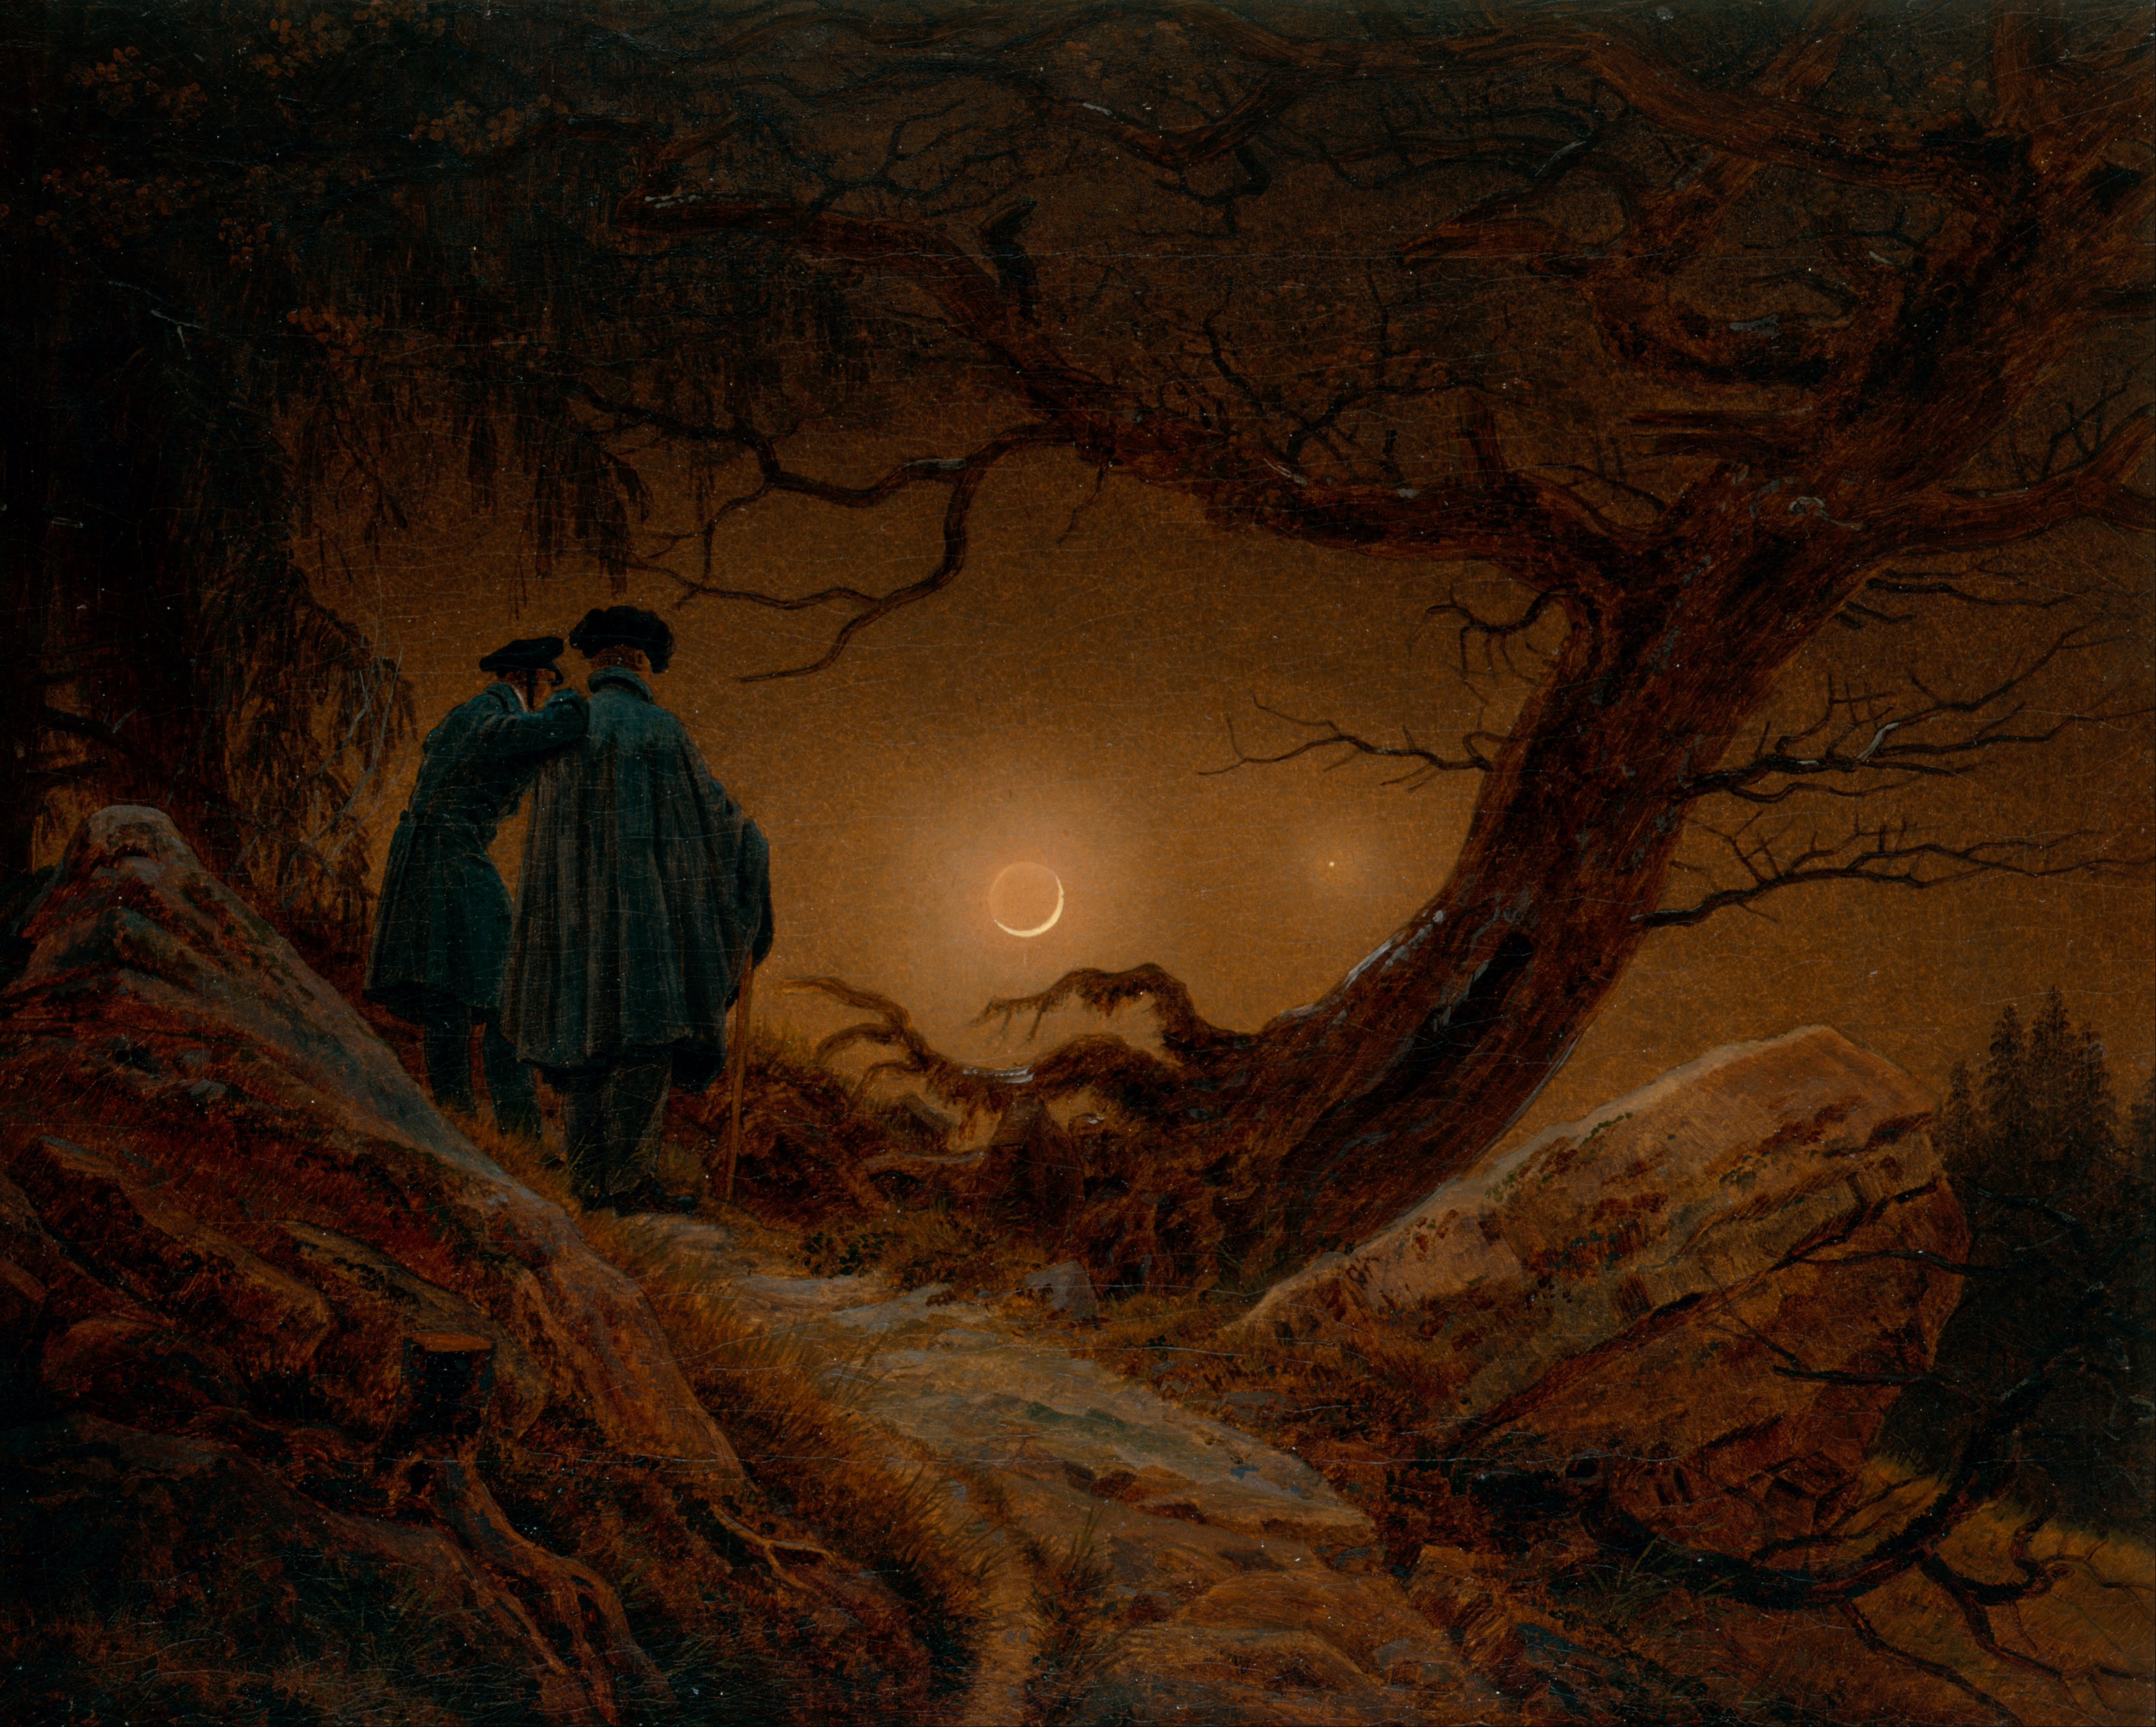 http://upload.wikimedia.org/wikipedia/commons/f/ff/Caspar_David_Friedrich_-_Two_Men_Contemplating_the_Moon_-_Google_Art_Project.jpg